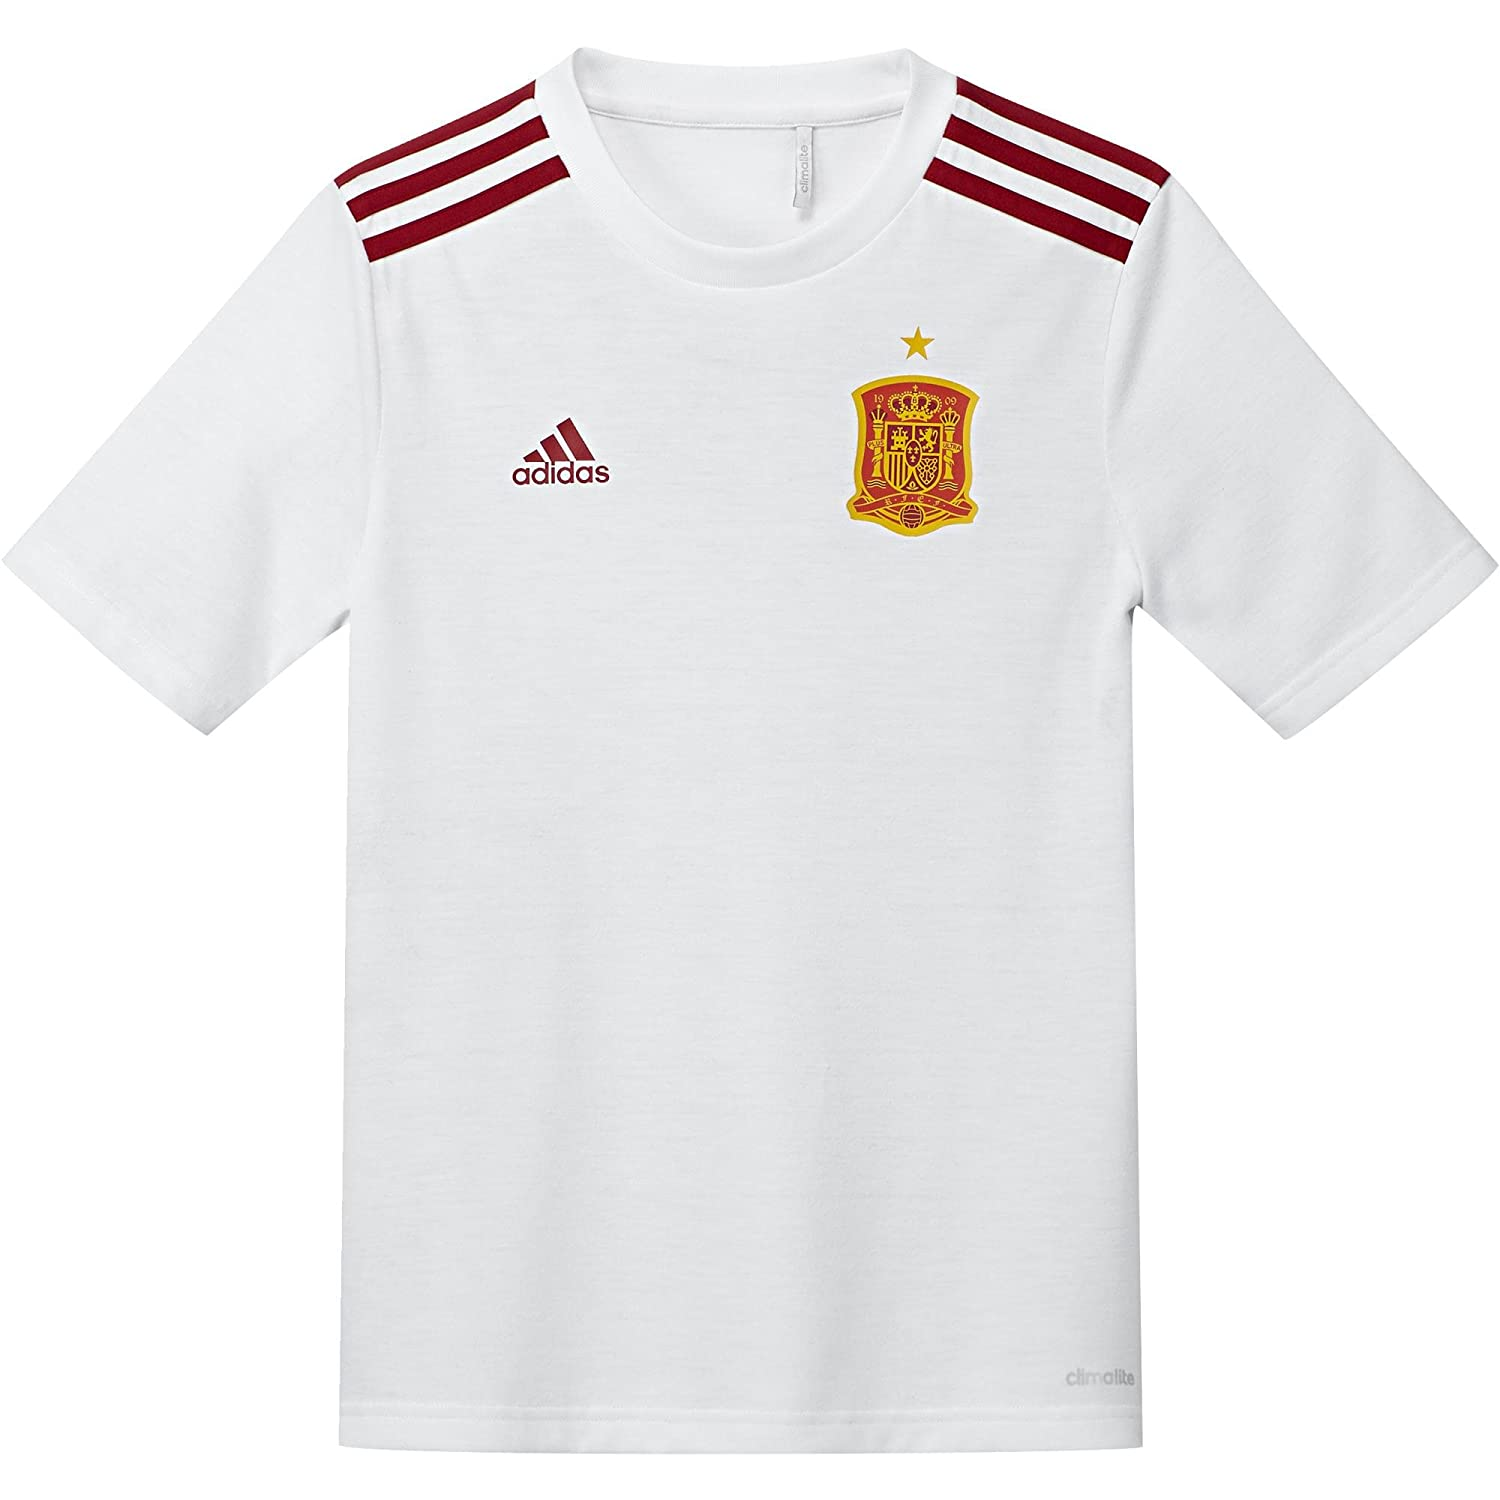 adidas 2016-2017 Spain Away Fan Camiseta, Niños, Blanco/Rojo ...